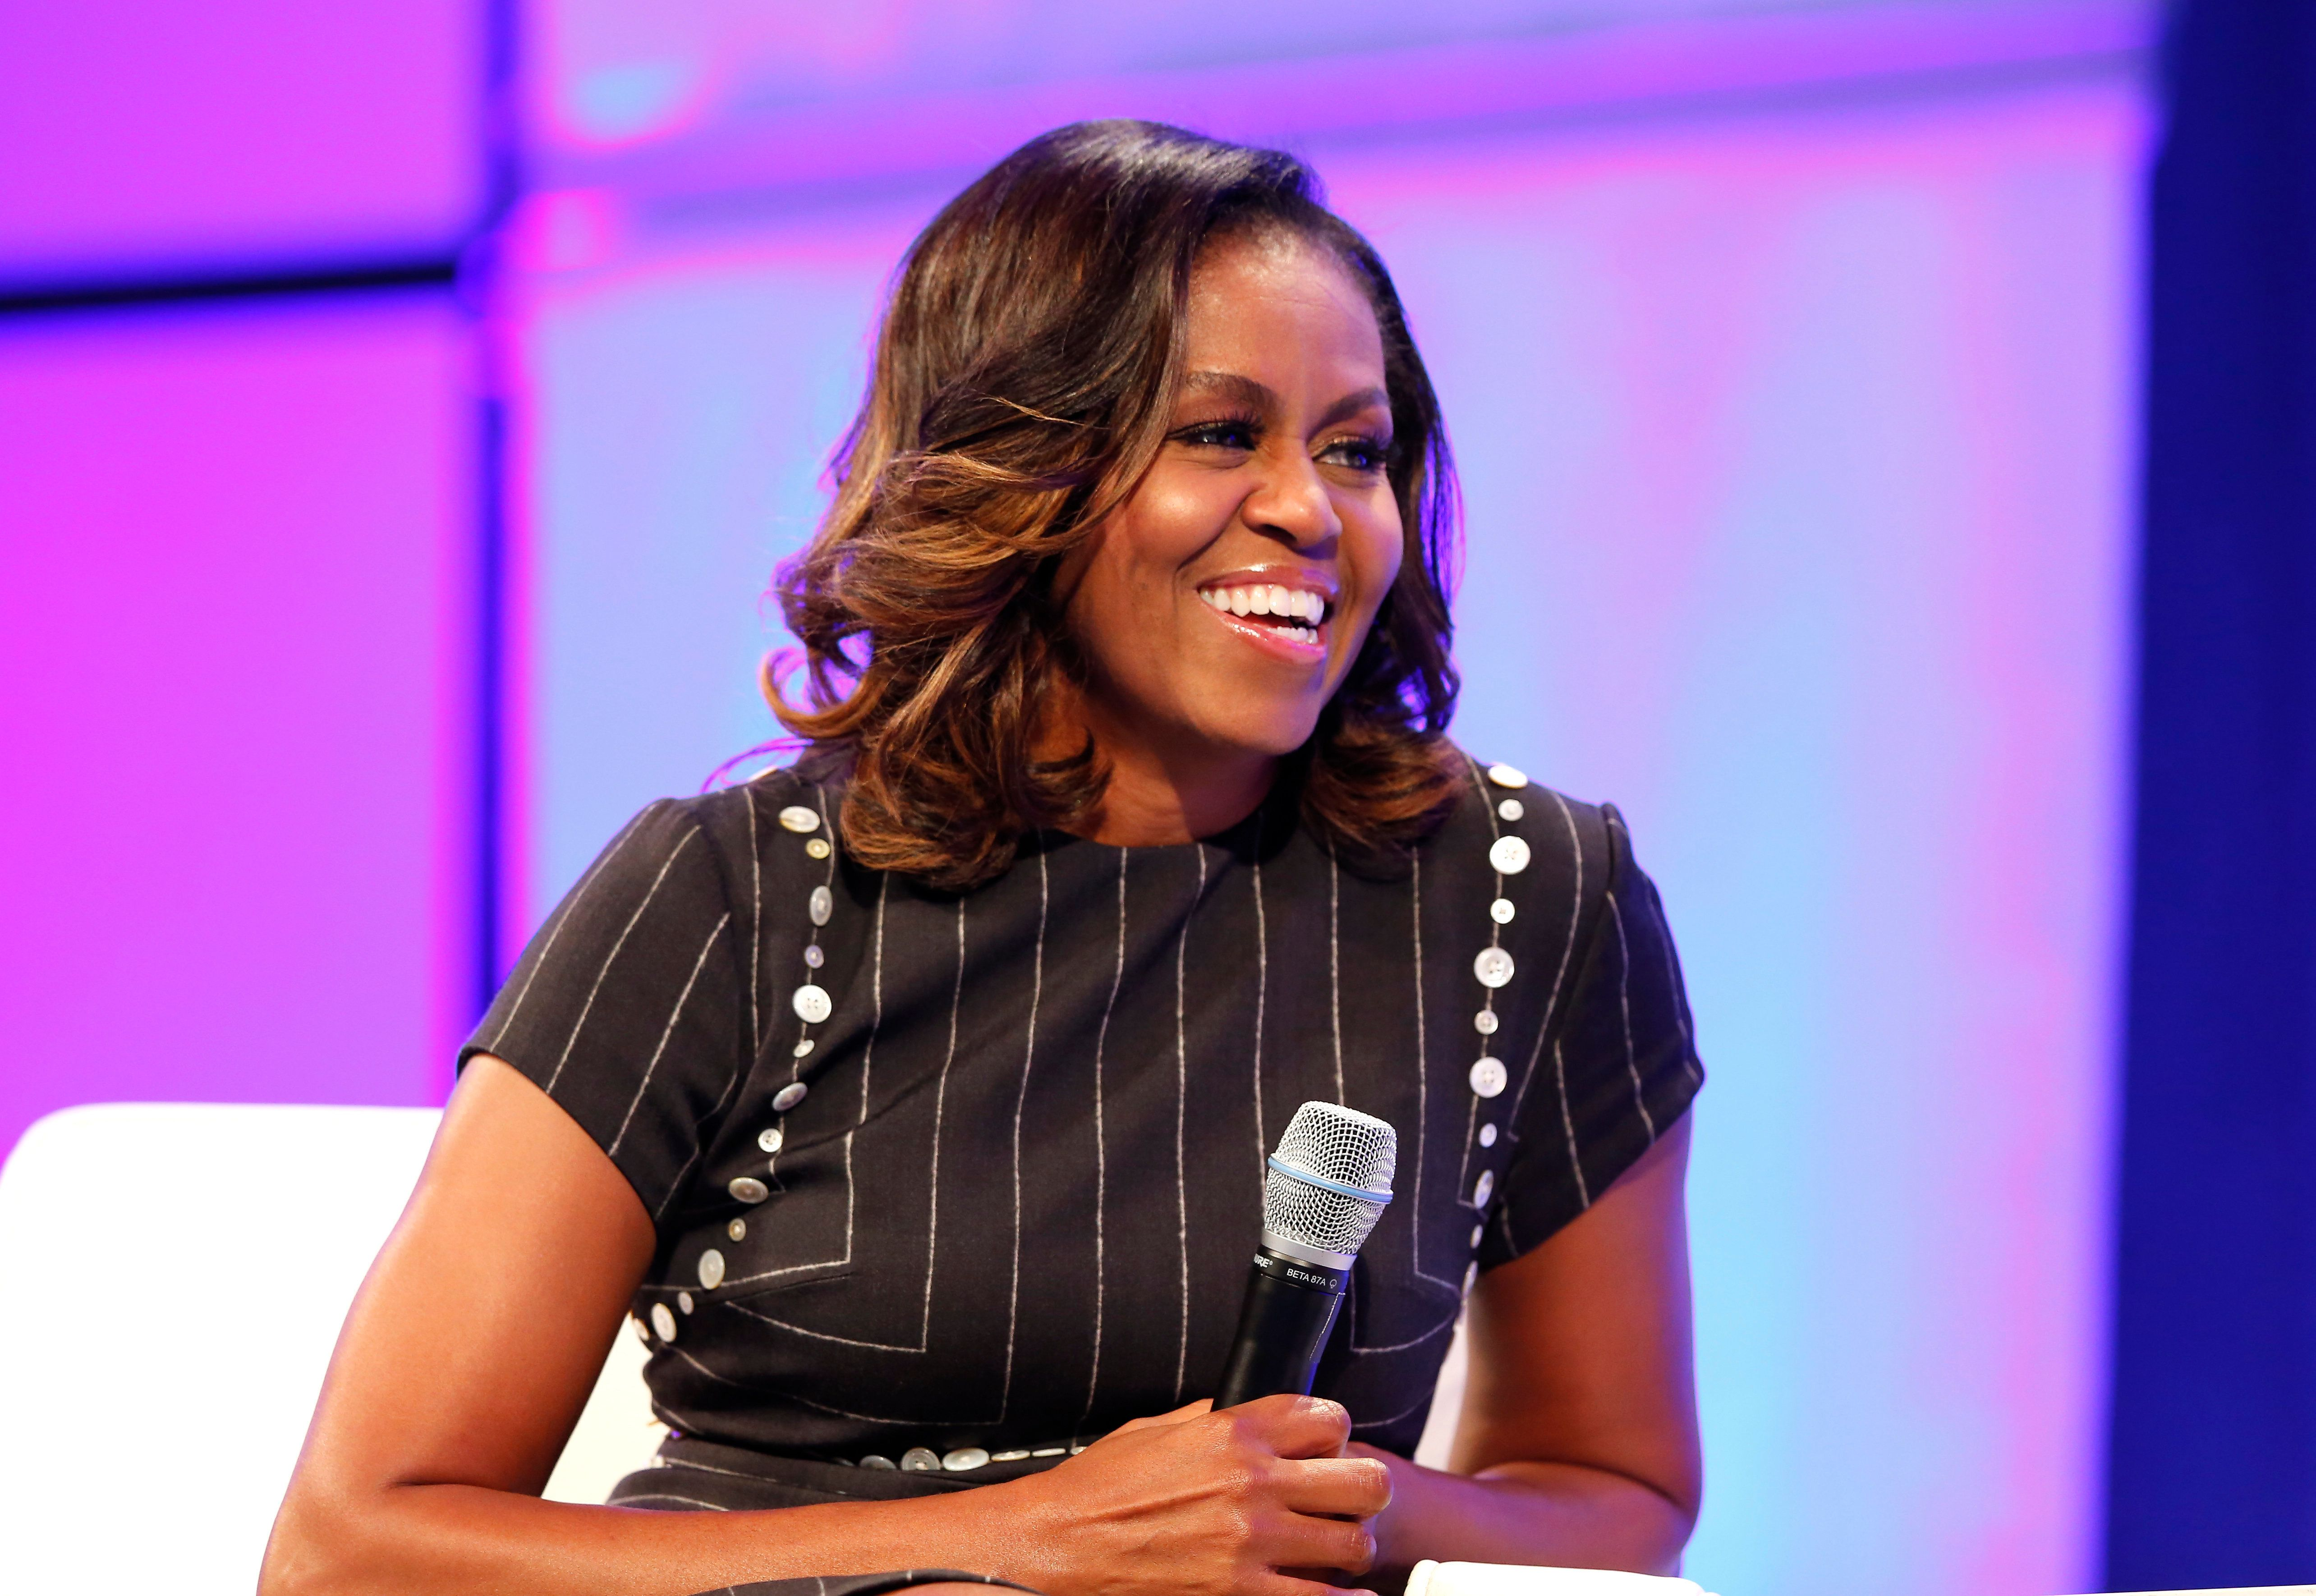 PHILADELPHIA, PA - OCTOBER 03:  Former First Lady of the United States Michelle Obama speaks during Pennsylvania Conference For Women 2017 at Pennsylvania Convention Center on October 3, 2017 in Philadelphia, Pennsylvania.  (Photo by Marla Aufmuth/Getty Images for Pennsylvania Conference for Women)